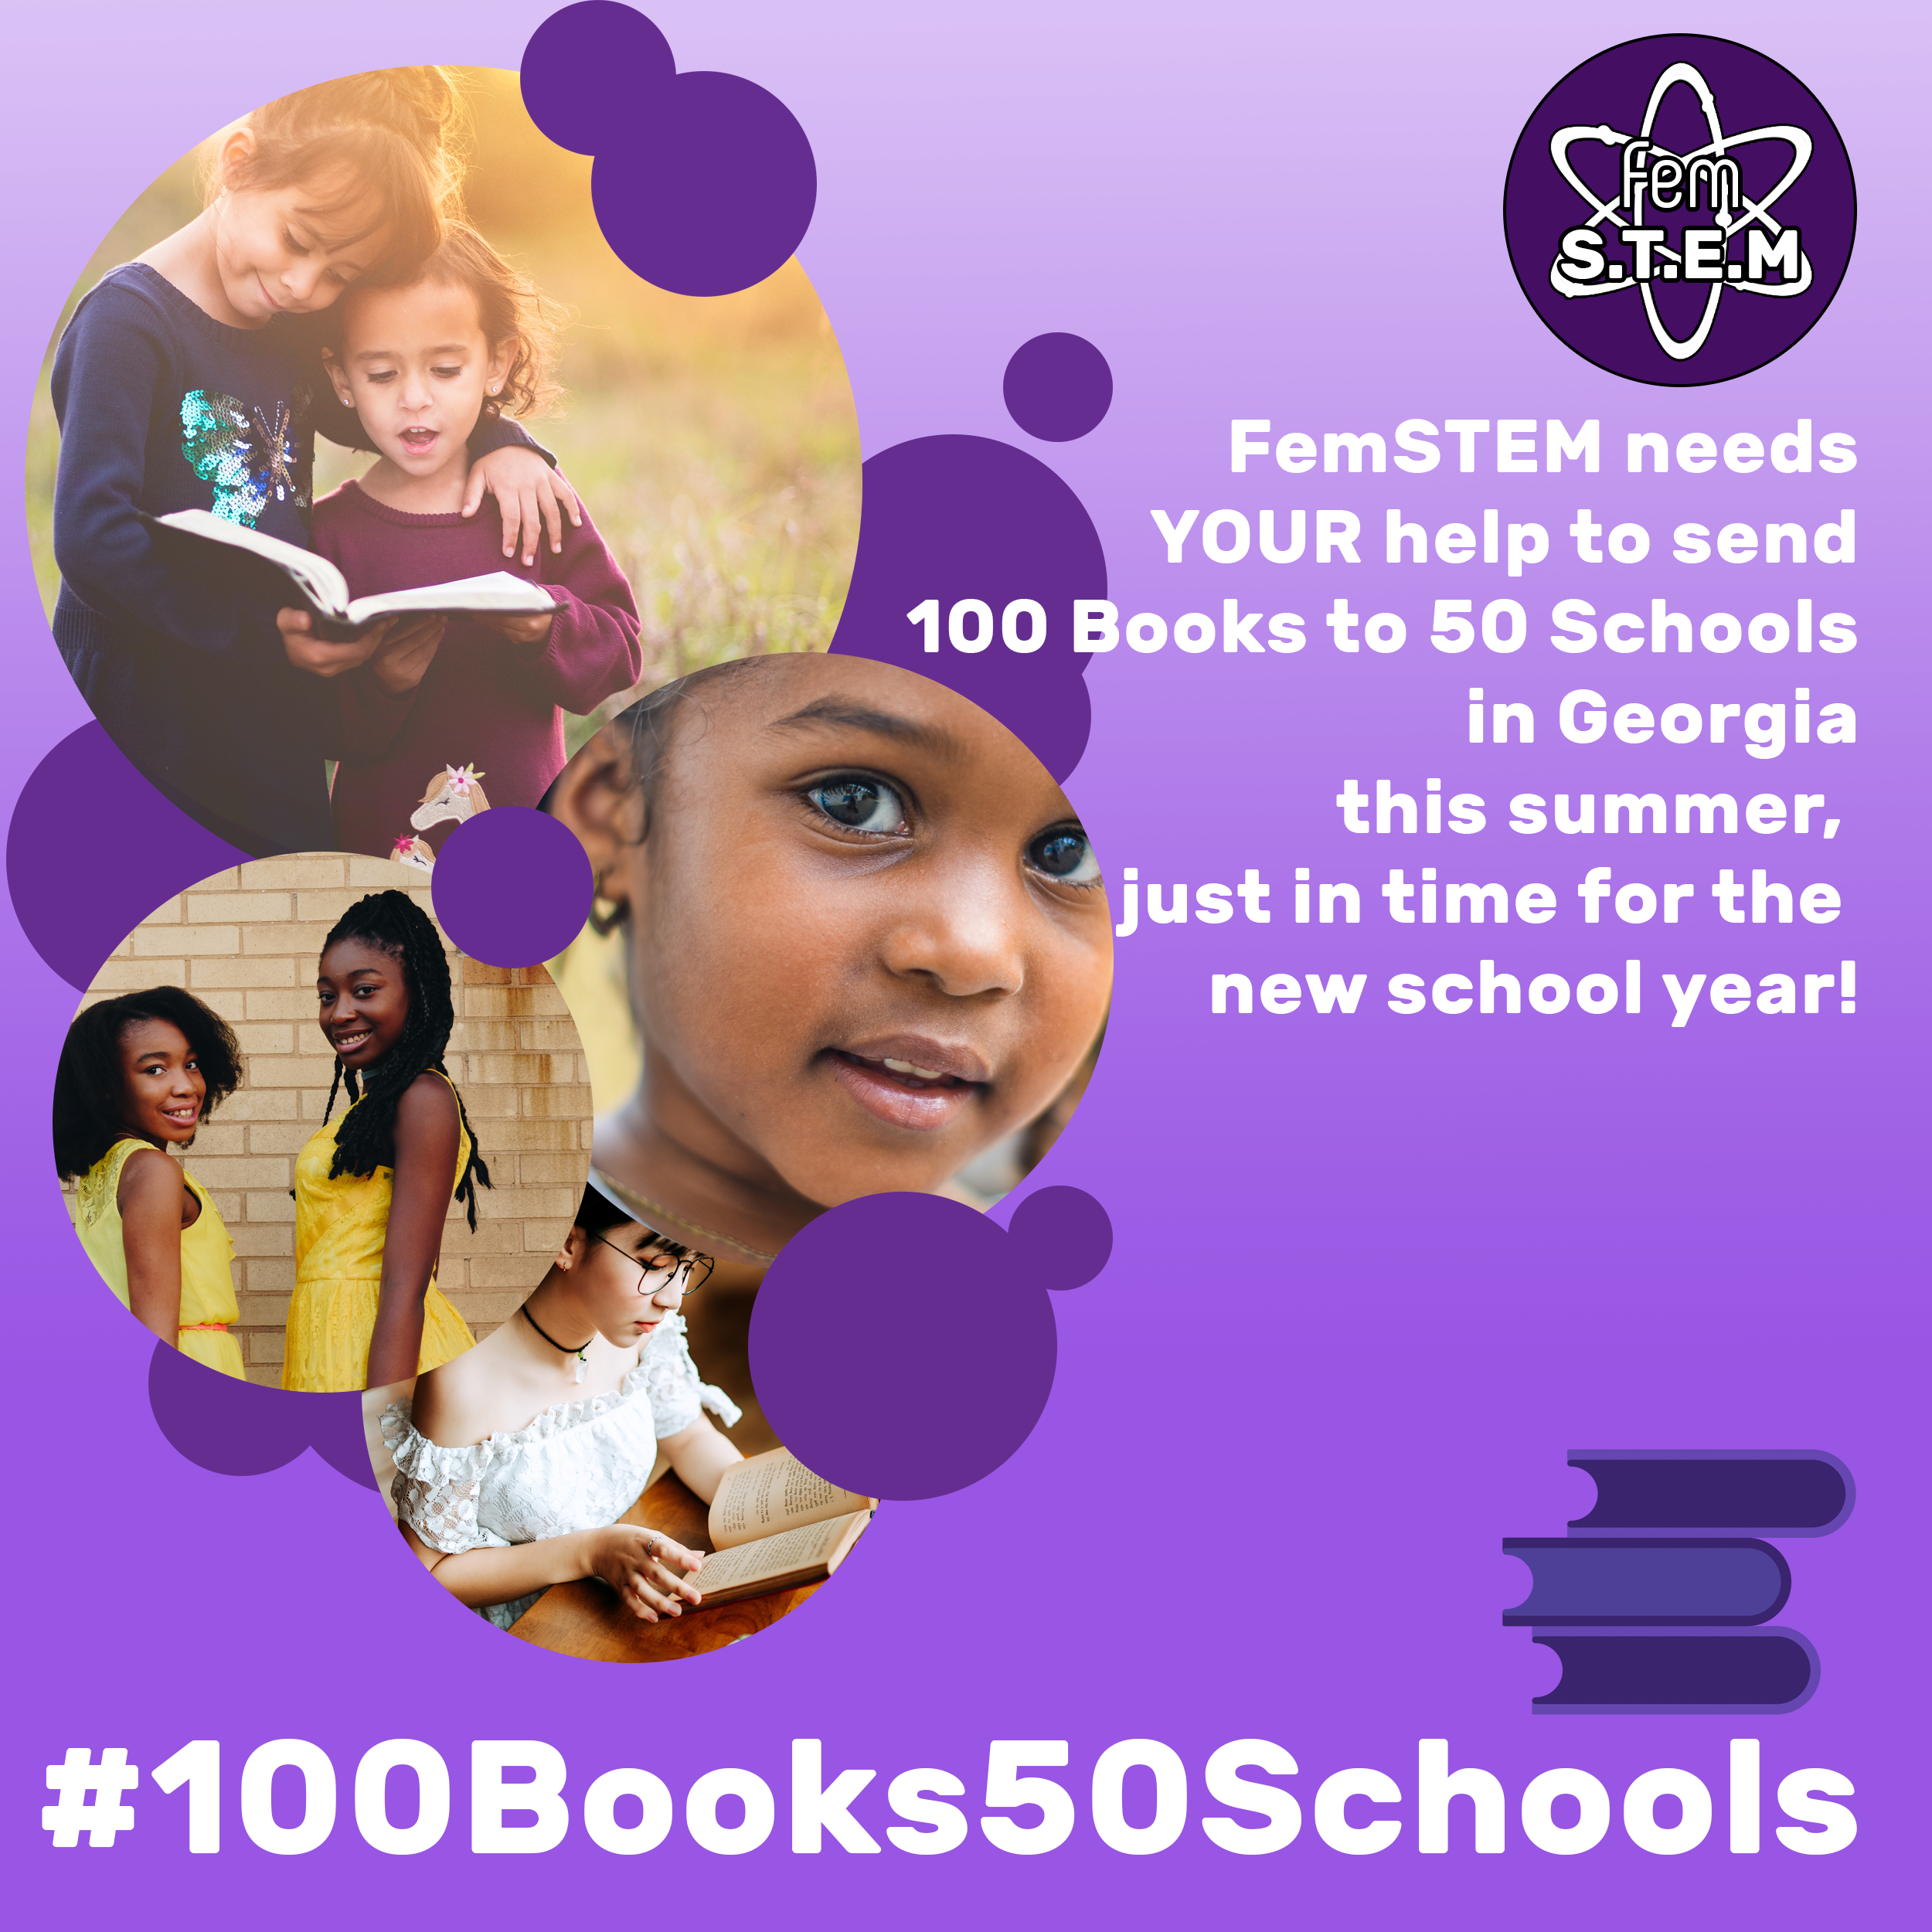 Click here to help us raise money to send 100 books to 50 schools.